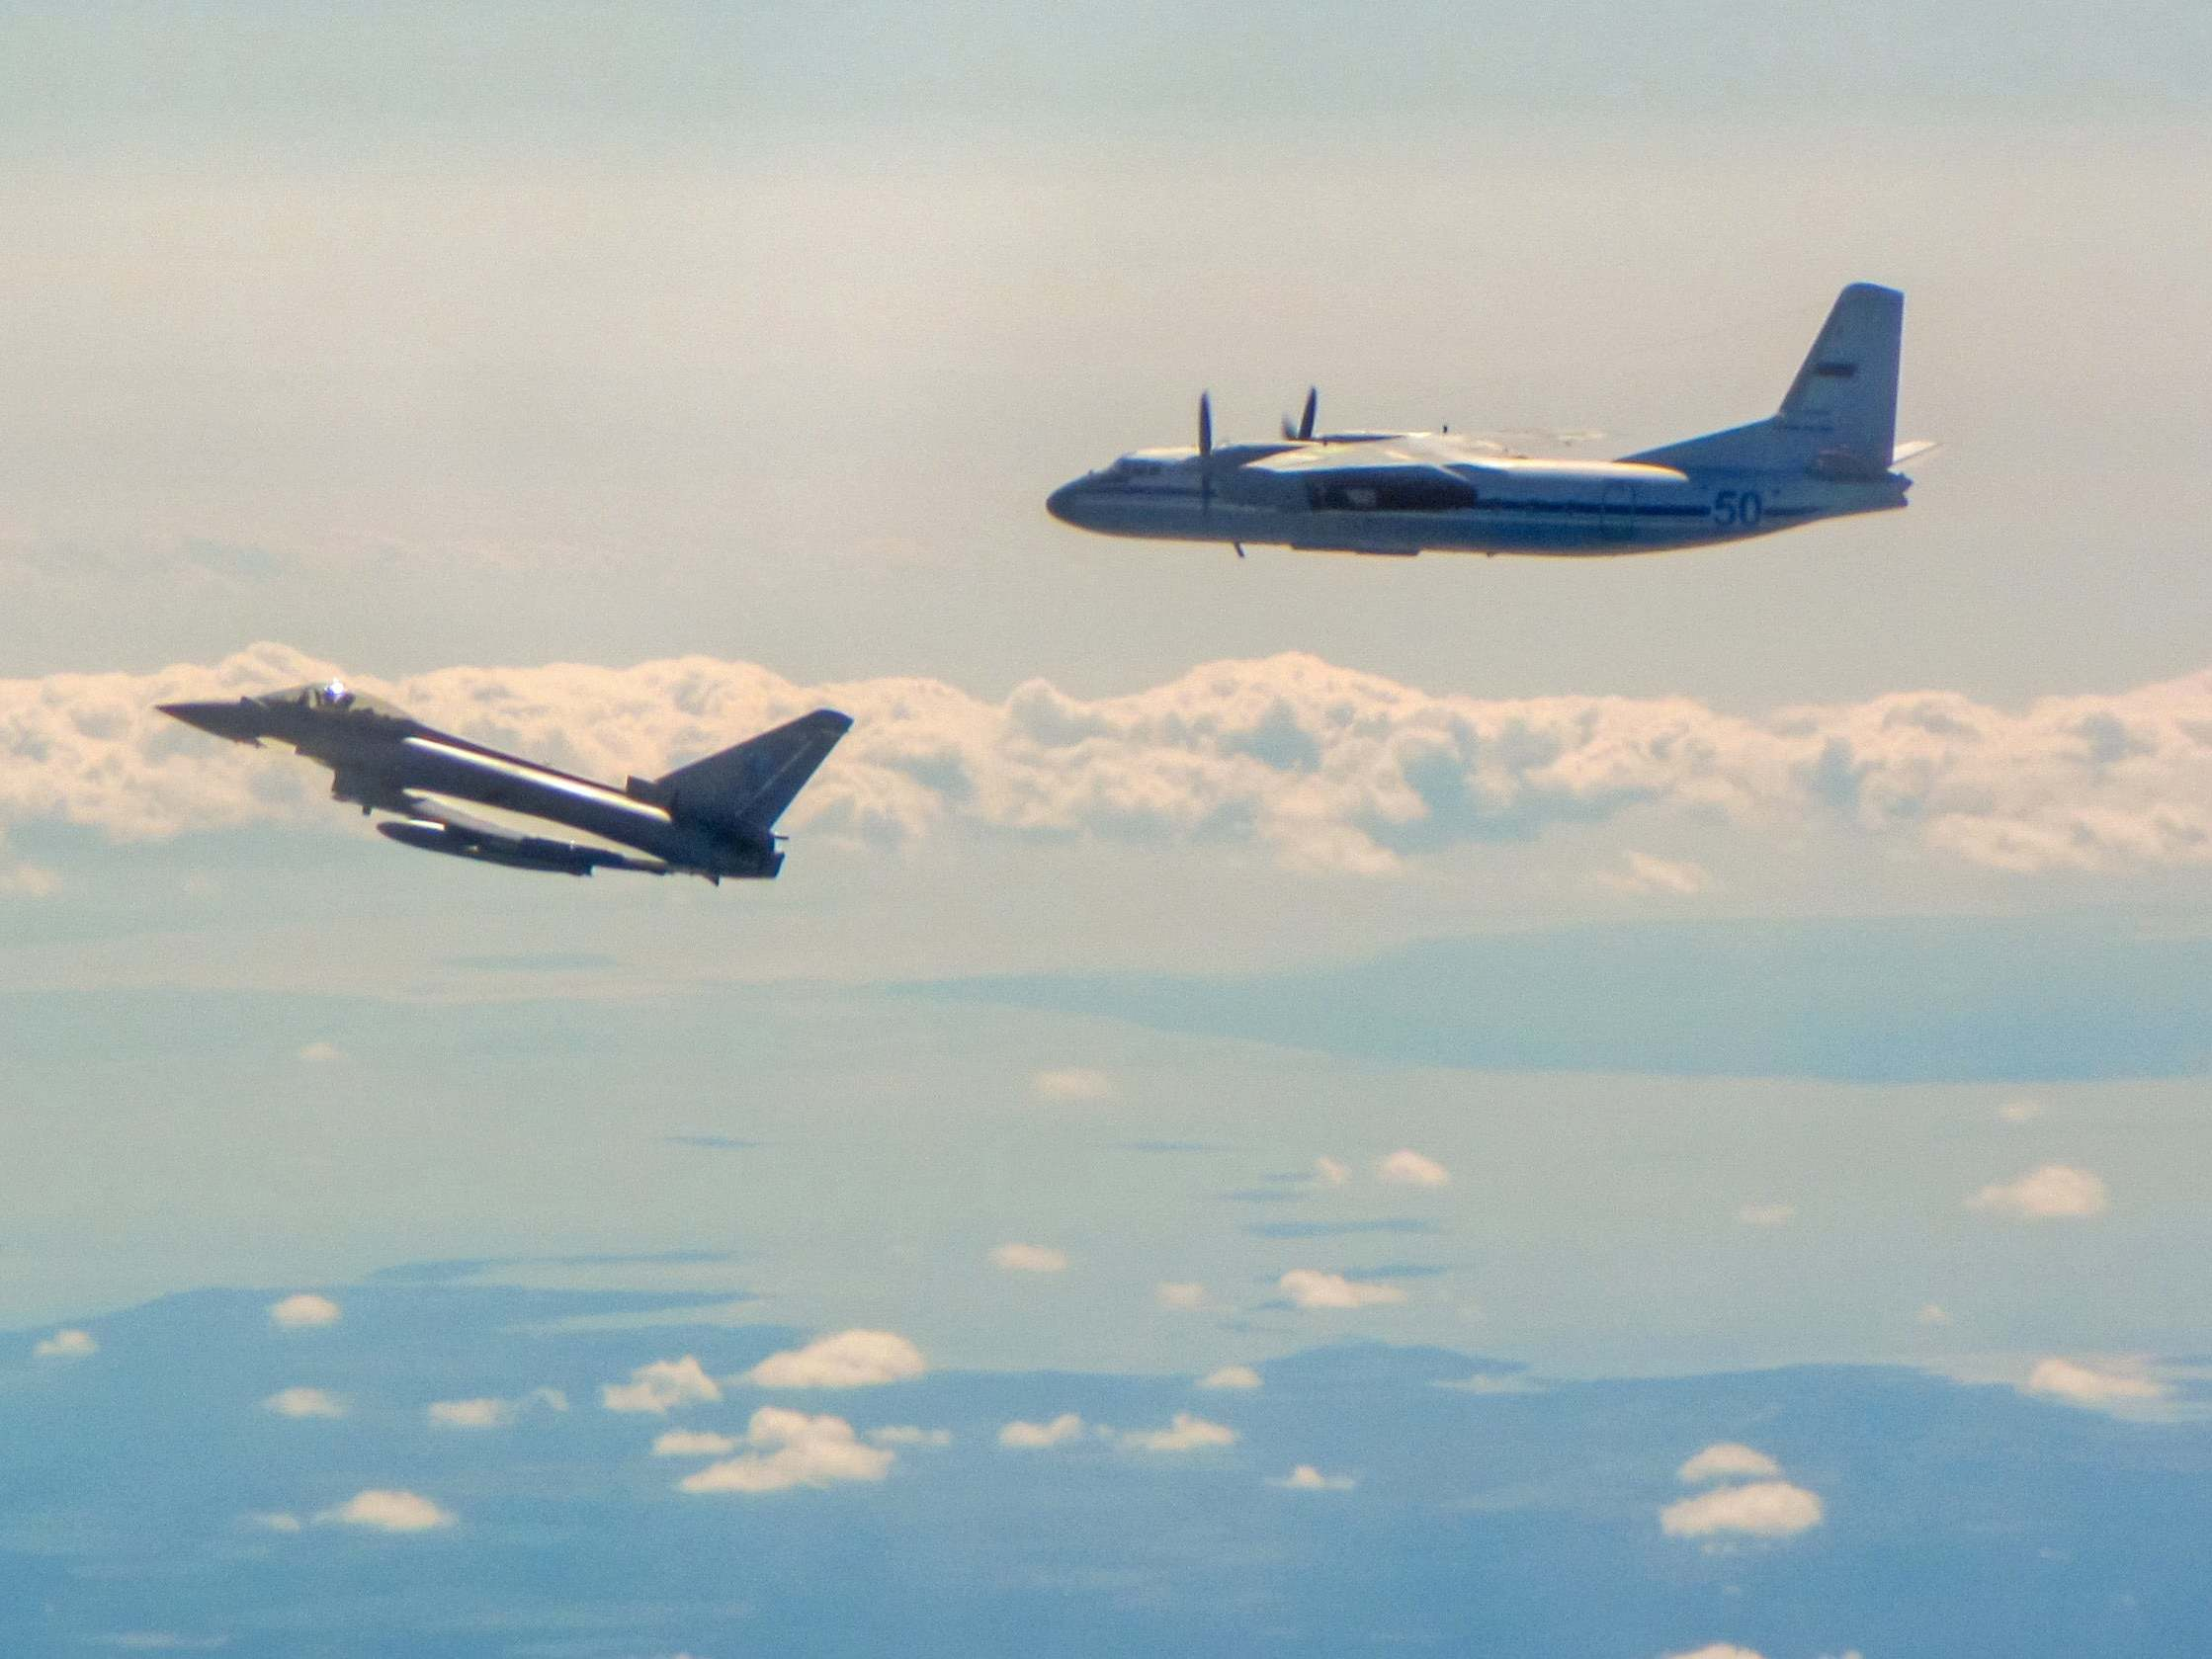 Royal Air Force - latest news, breaking stories and comment